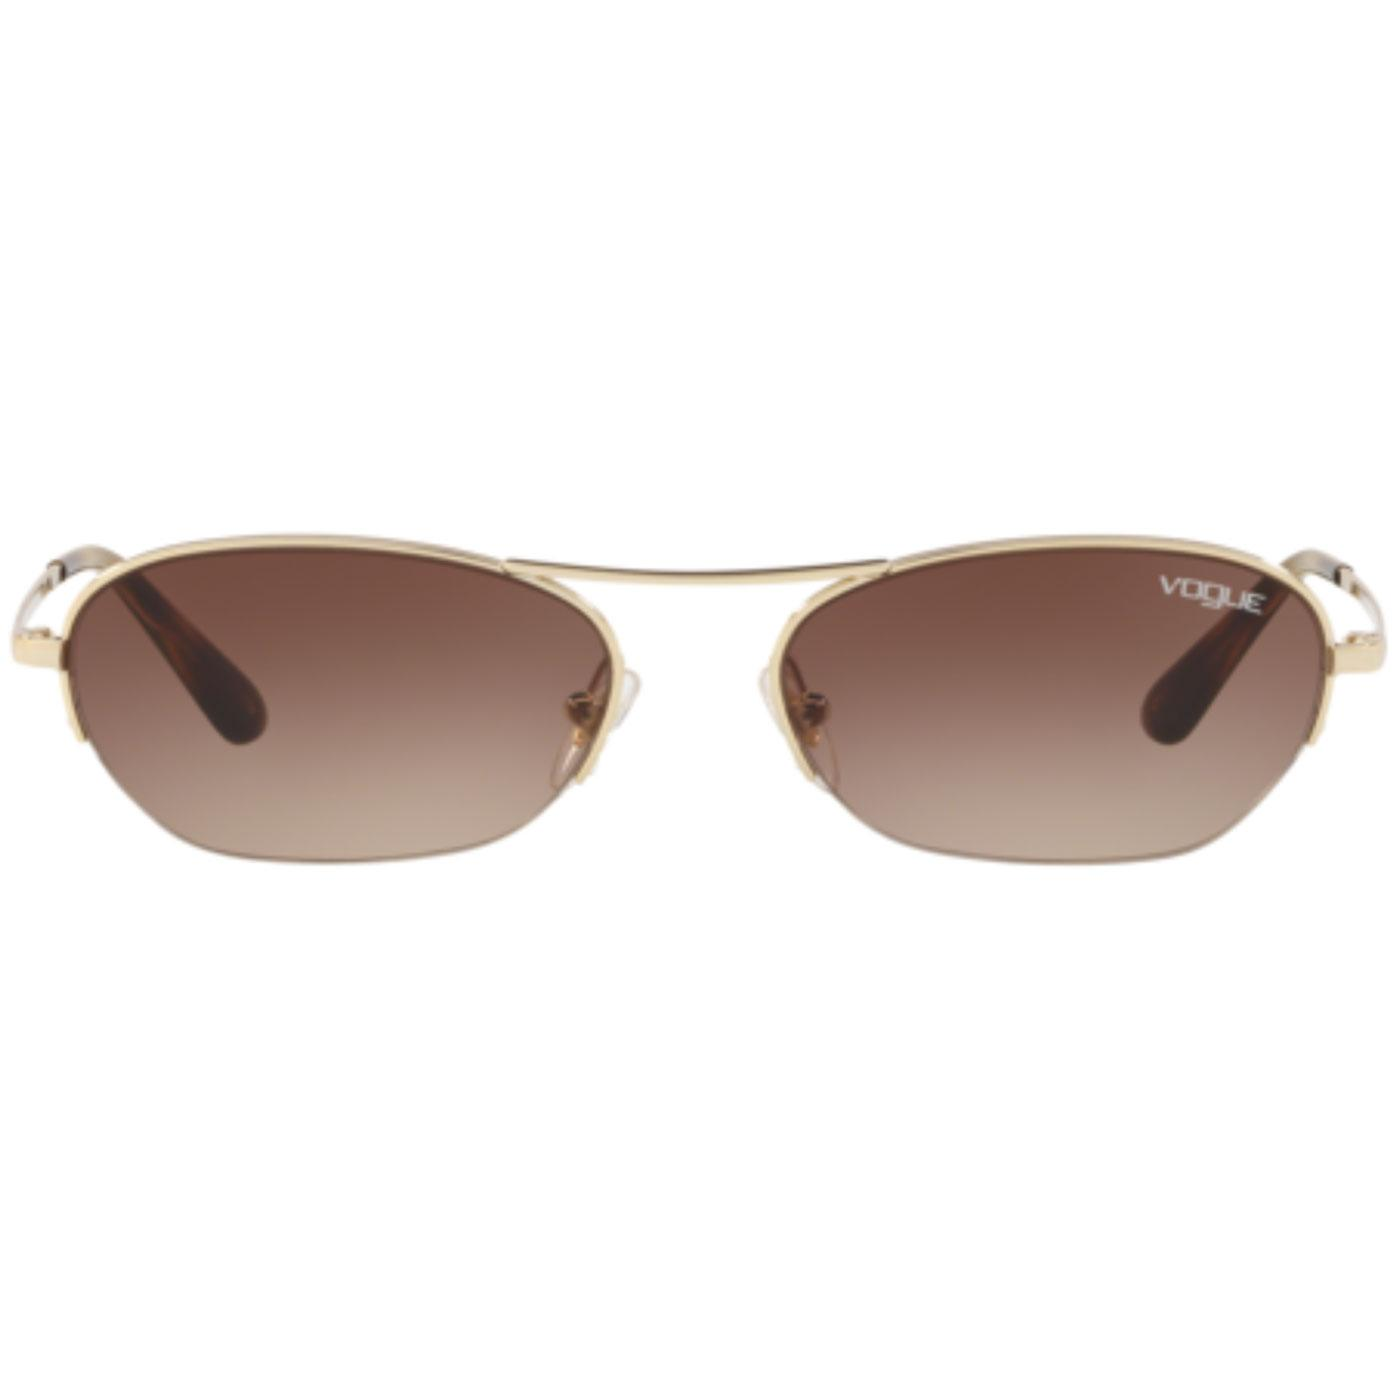 VOGUE x GIGI HADID Retro Oval Pale Gold Sunglasses